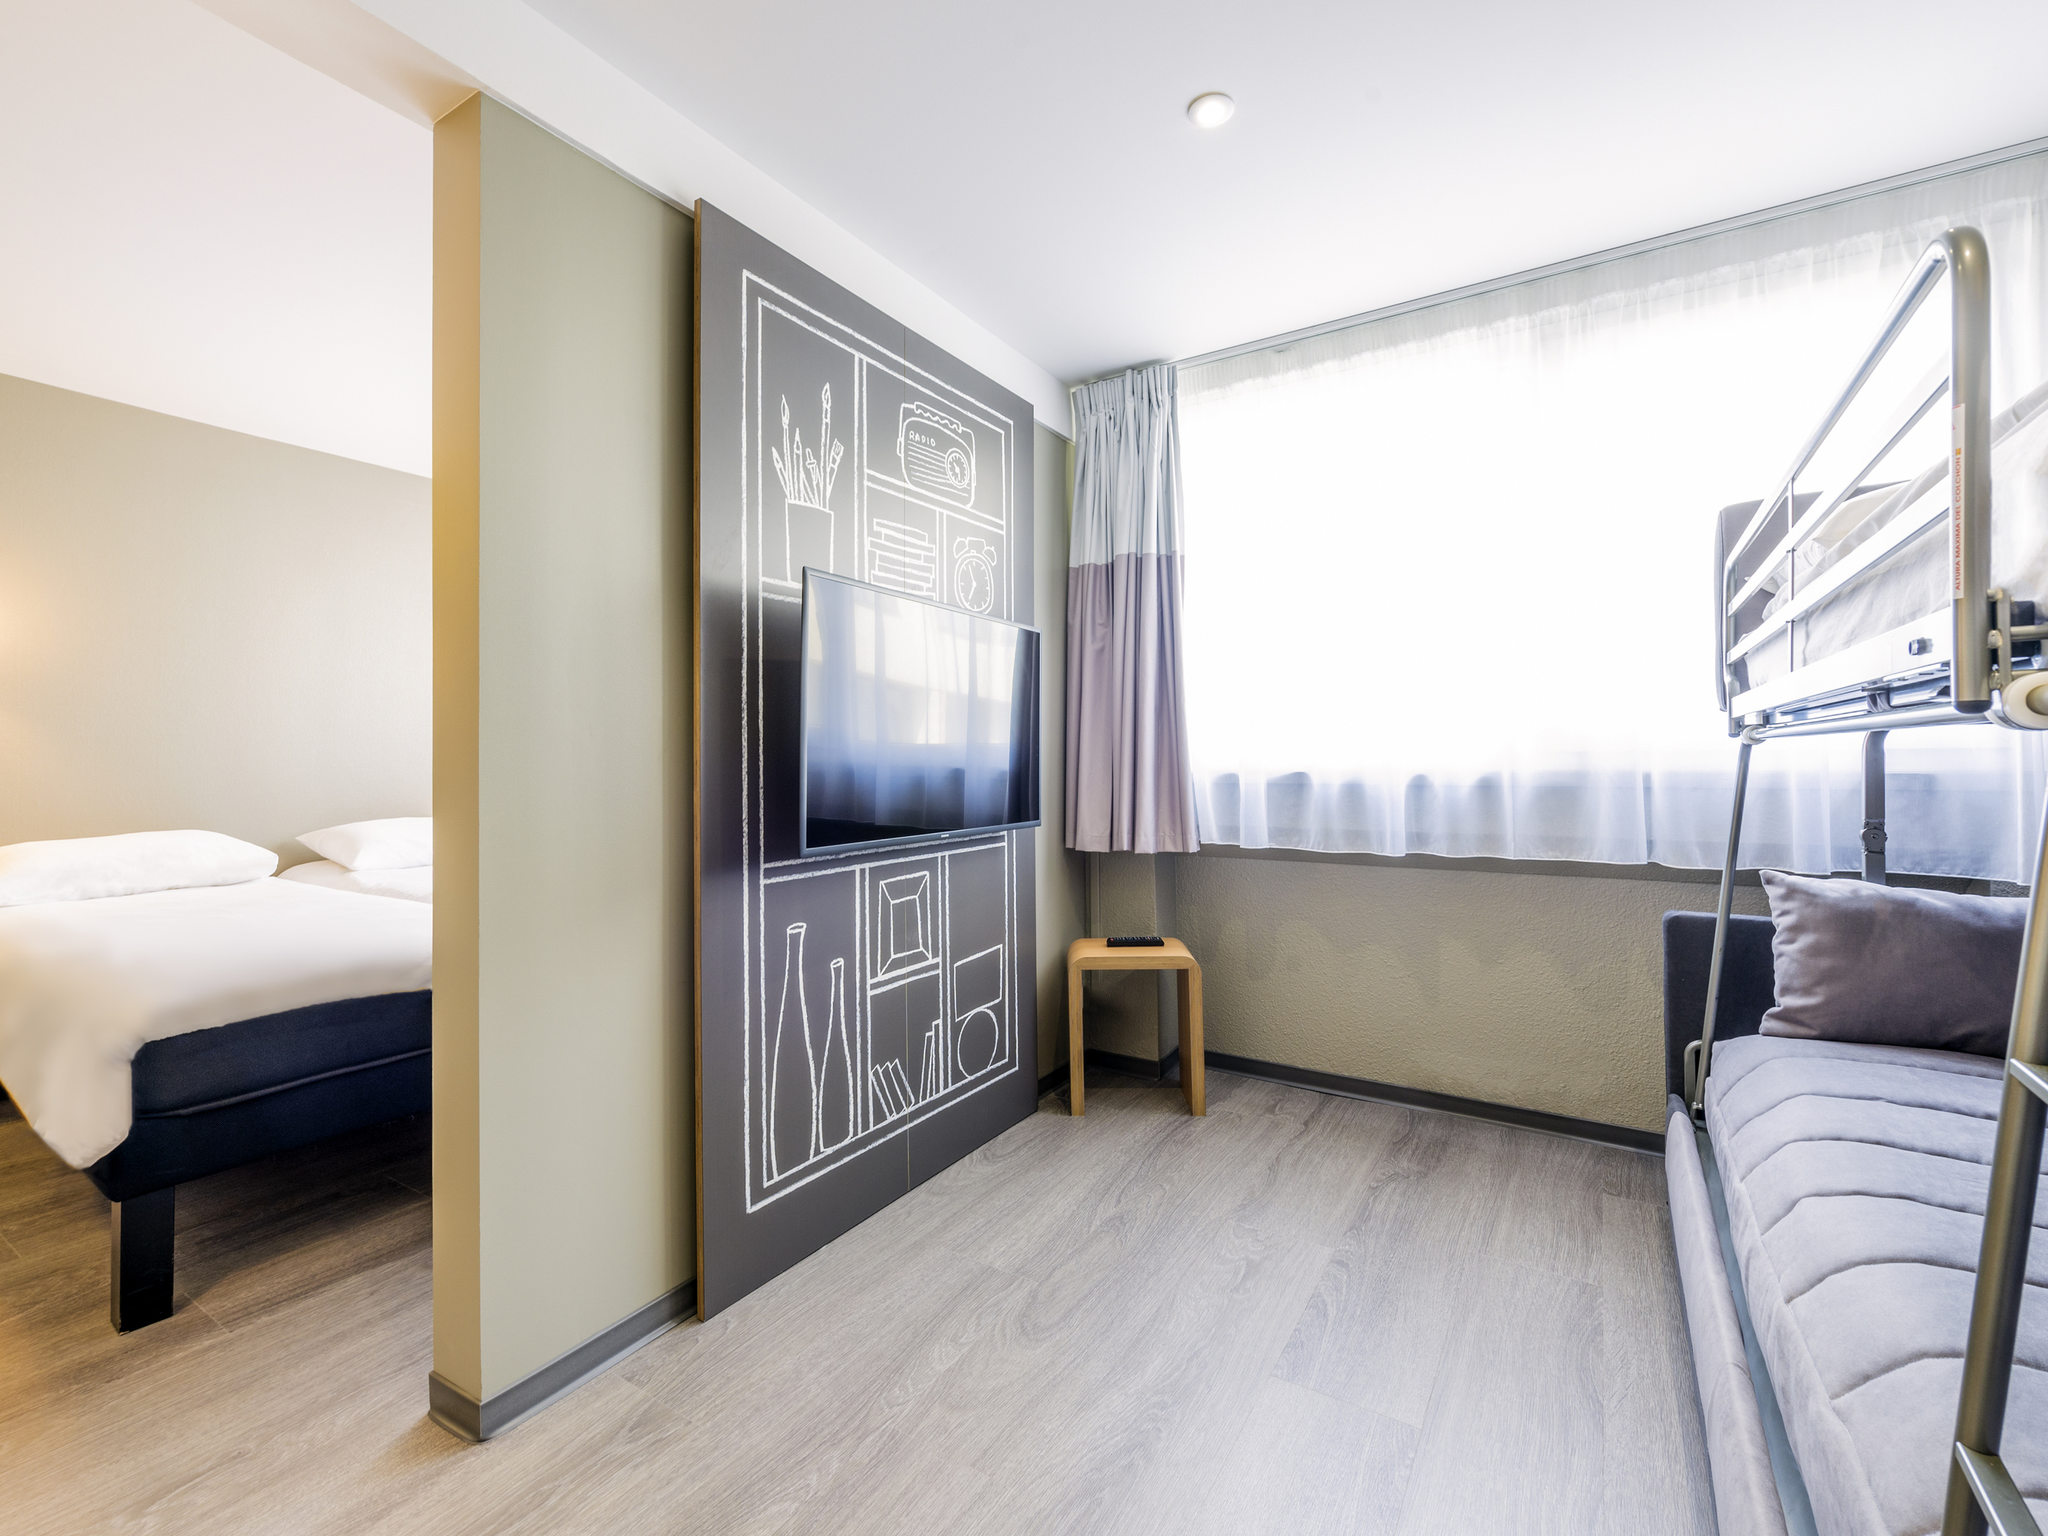 Hotel In Toulouse Ibis Universit The Little Things She Needs Kashira 2b Brown Cokelat 38 Rooms